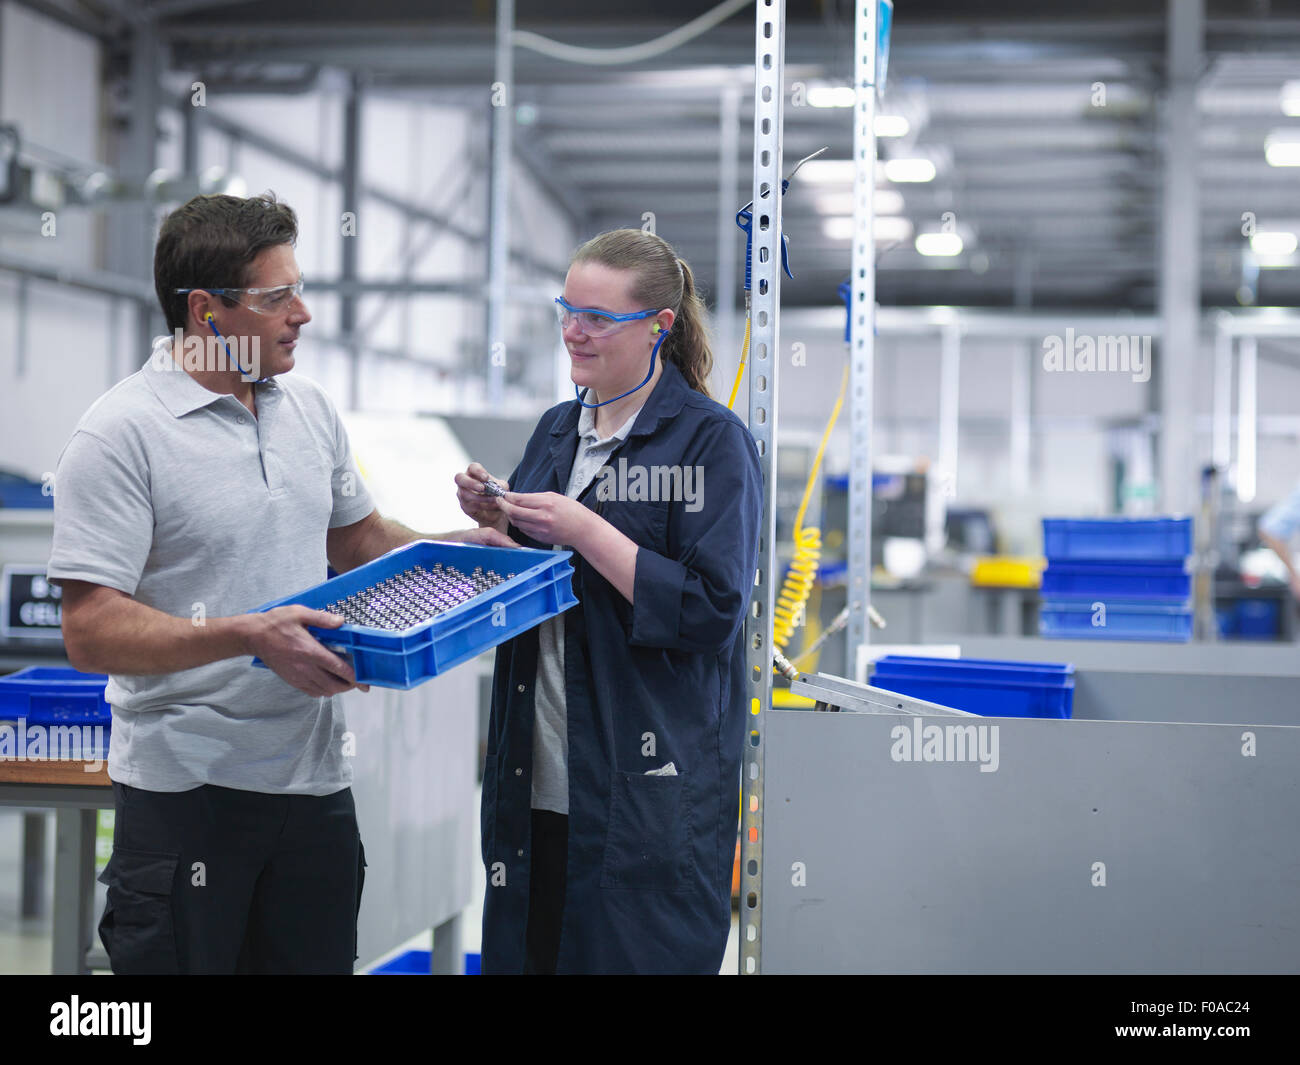 Male and female engineers discussing product - Stock Image